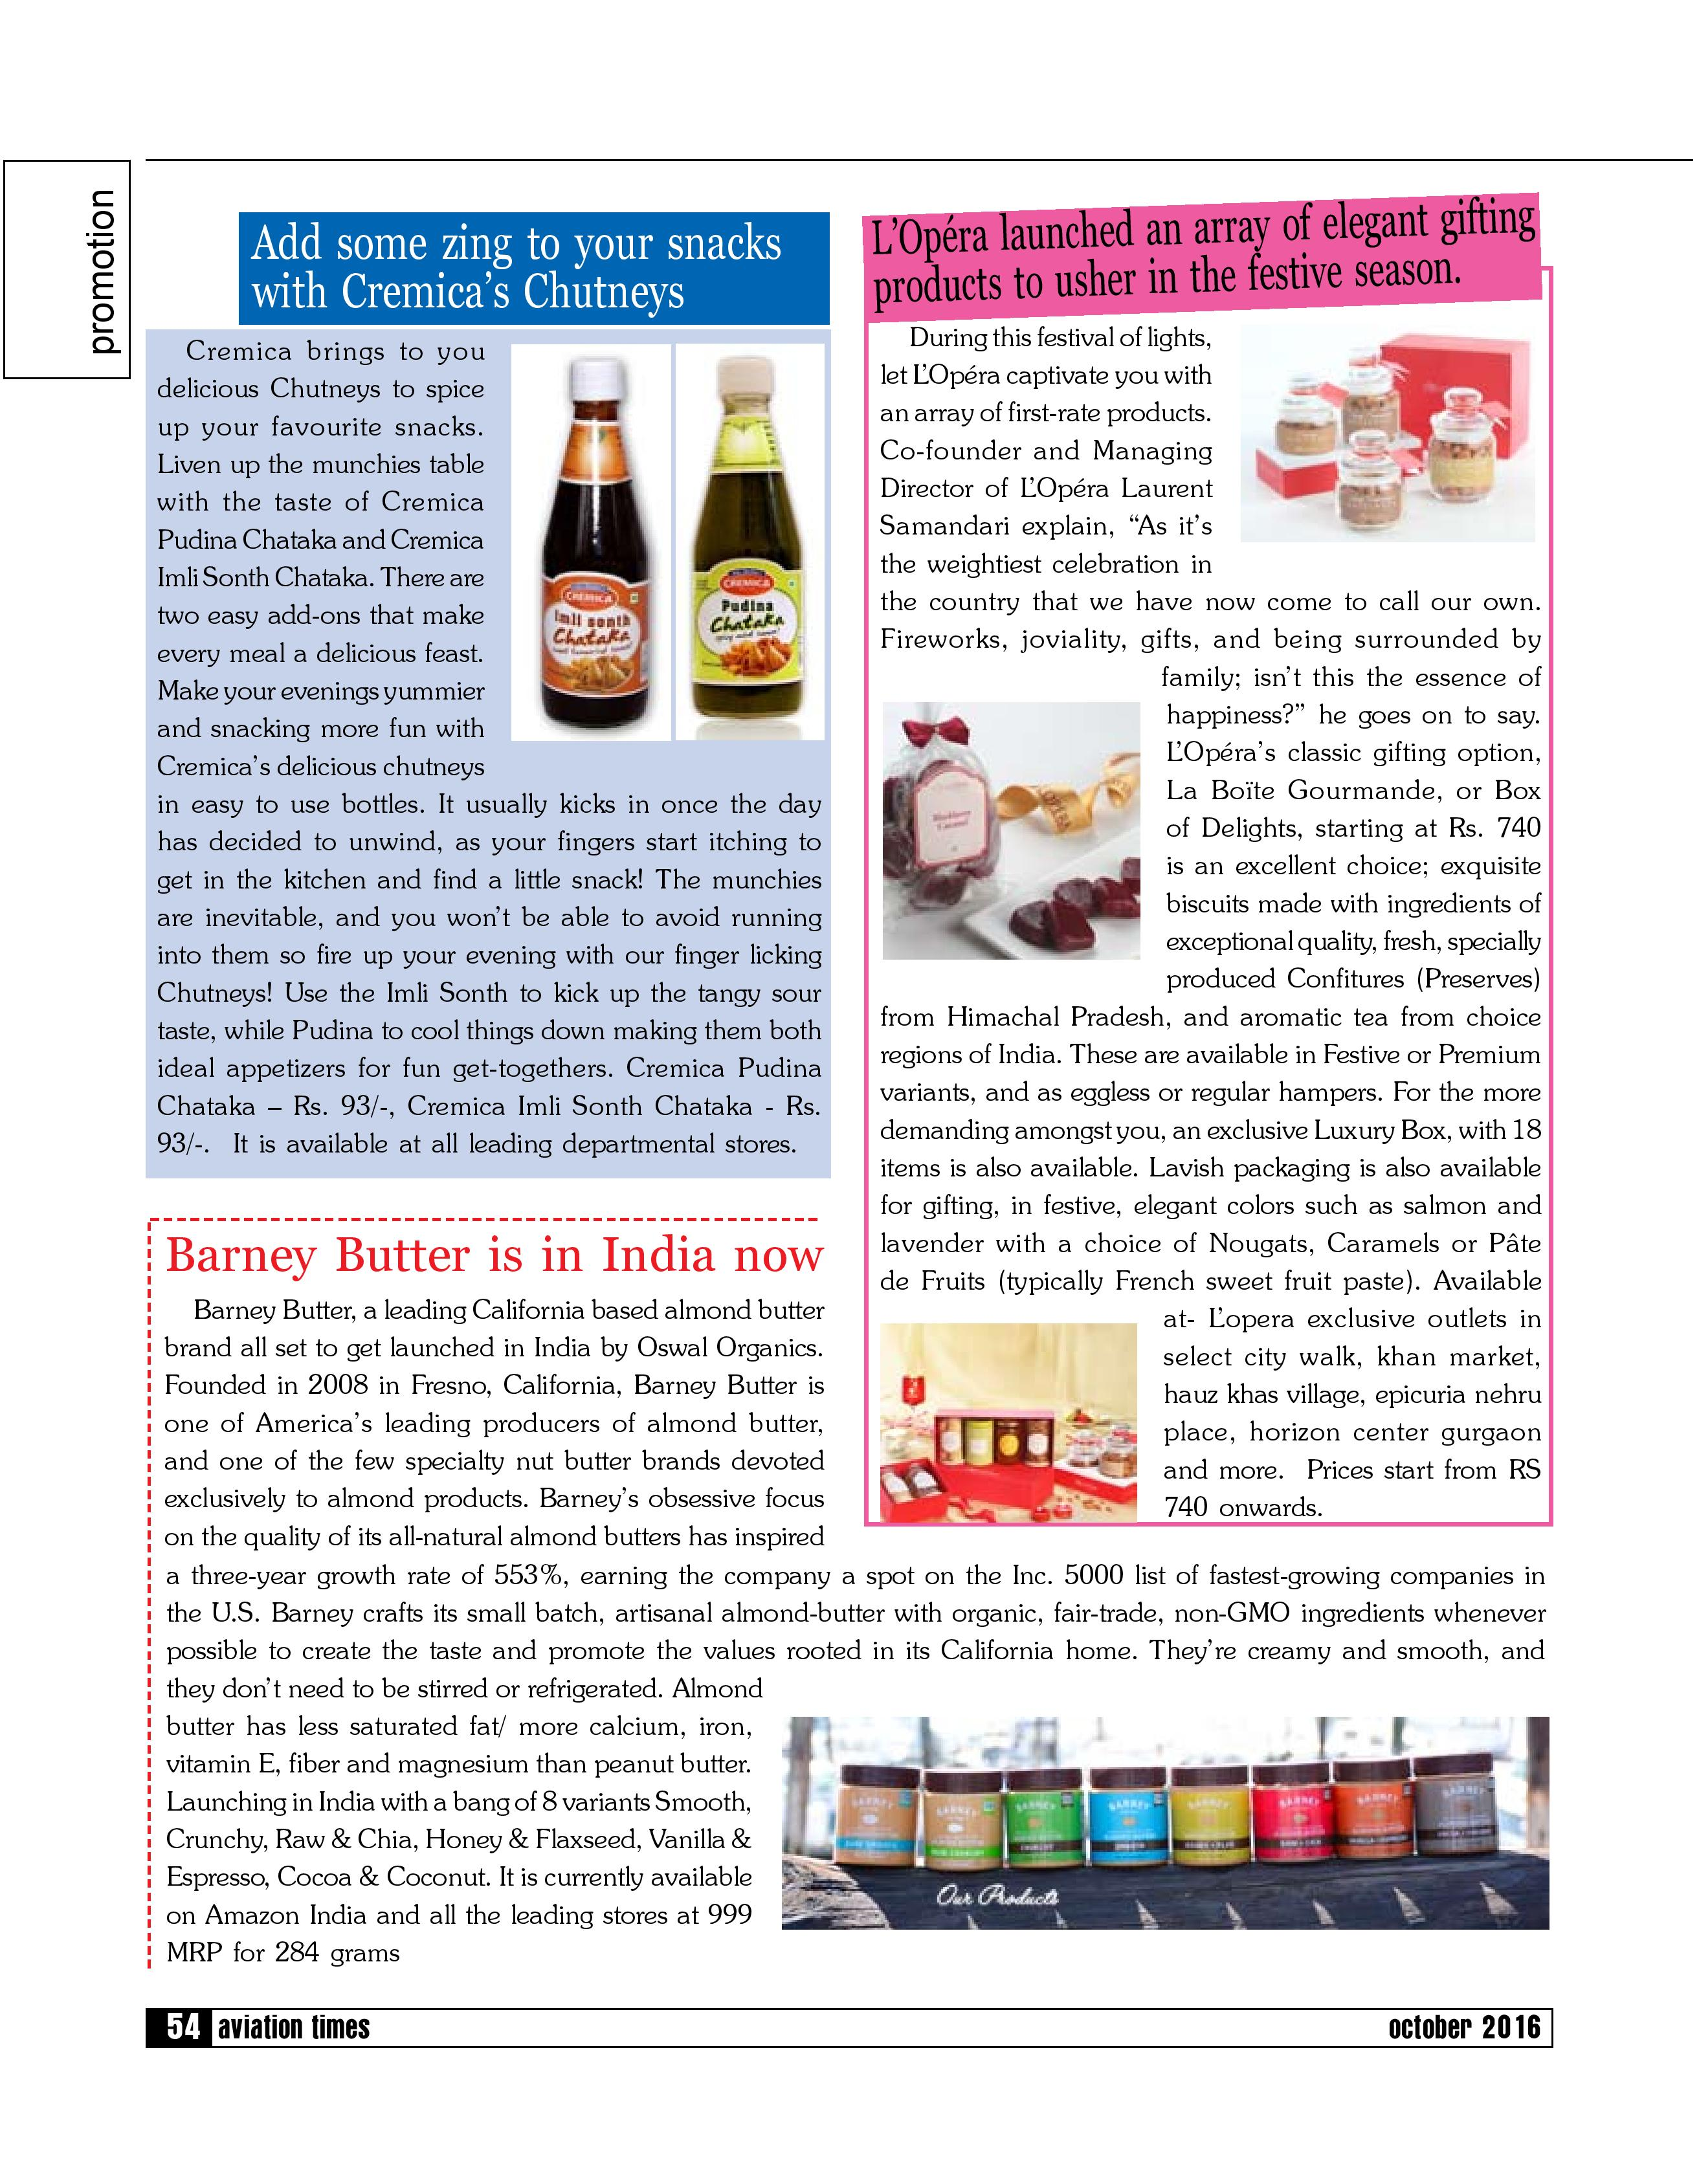 lopera-aviation-times-for-diwali-products